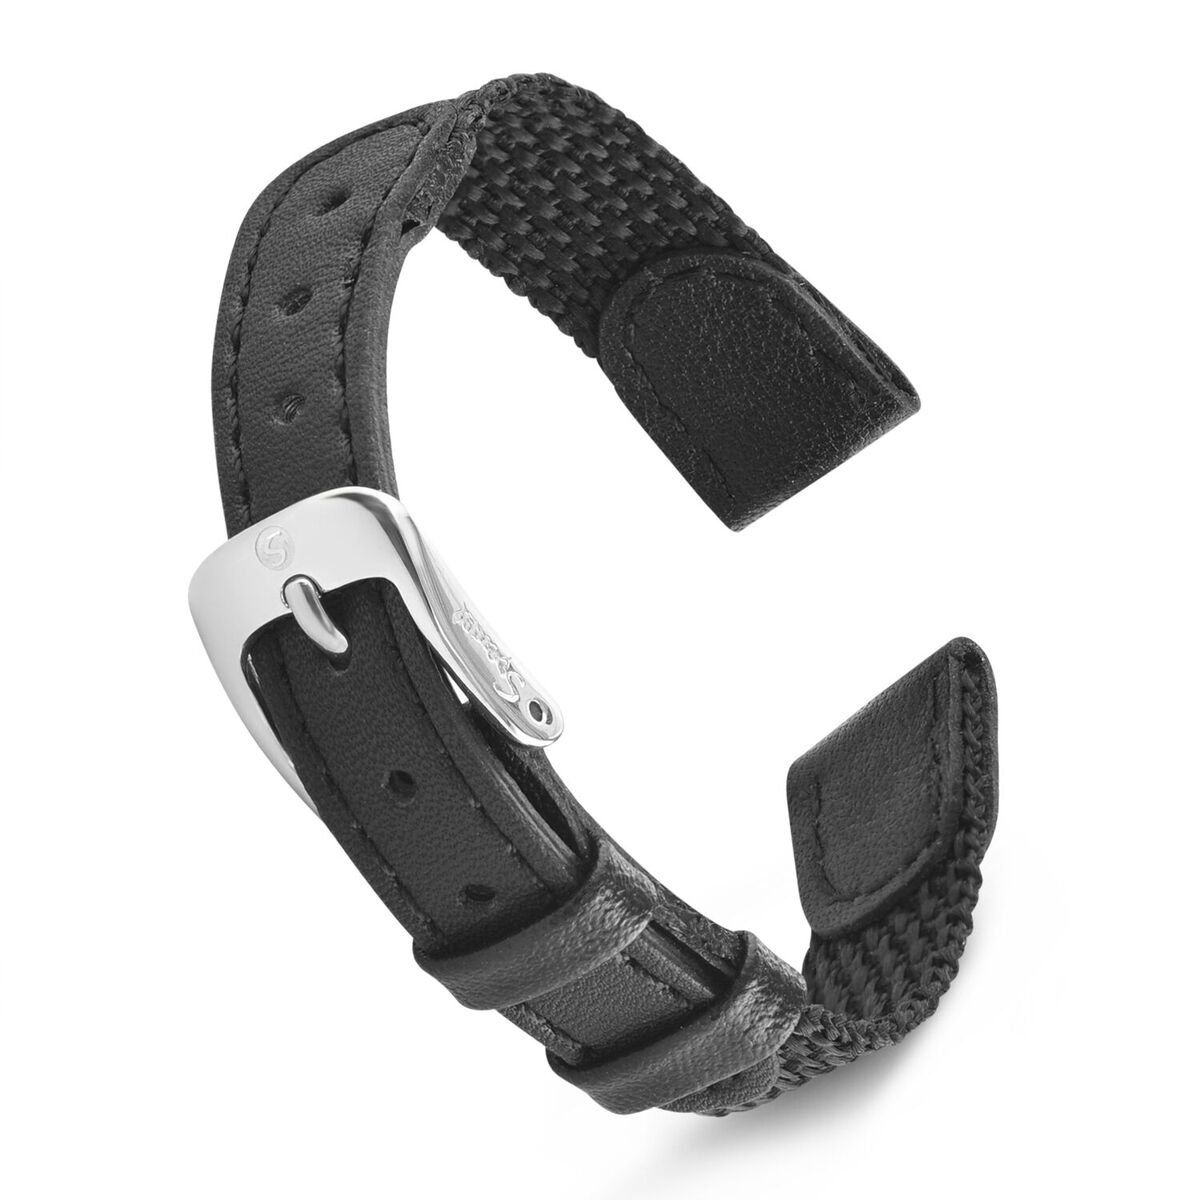 Speidel Swiss Army Style Ladies Replacment Strap - 12mm, Genuine Leather and Black Nylon Combination Watch Band, Stainless Steel Meal Clasp